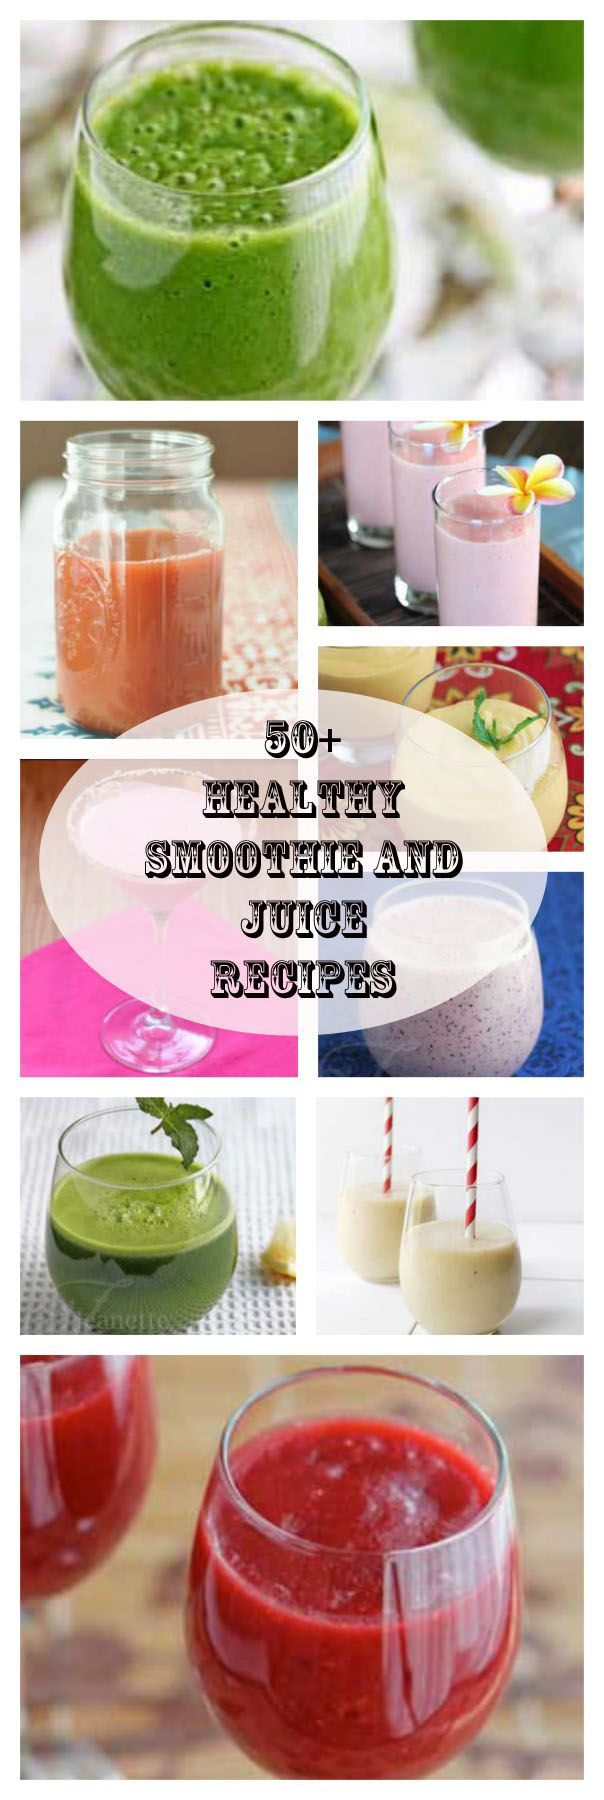 50 Healthy Smoothie and Juice Recipes   Jeanette's Healthy Living